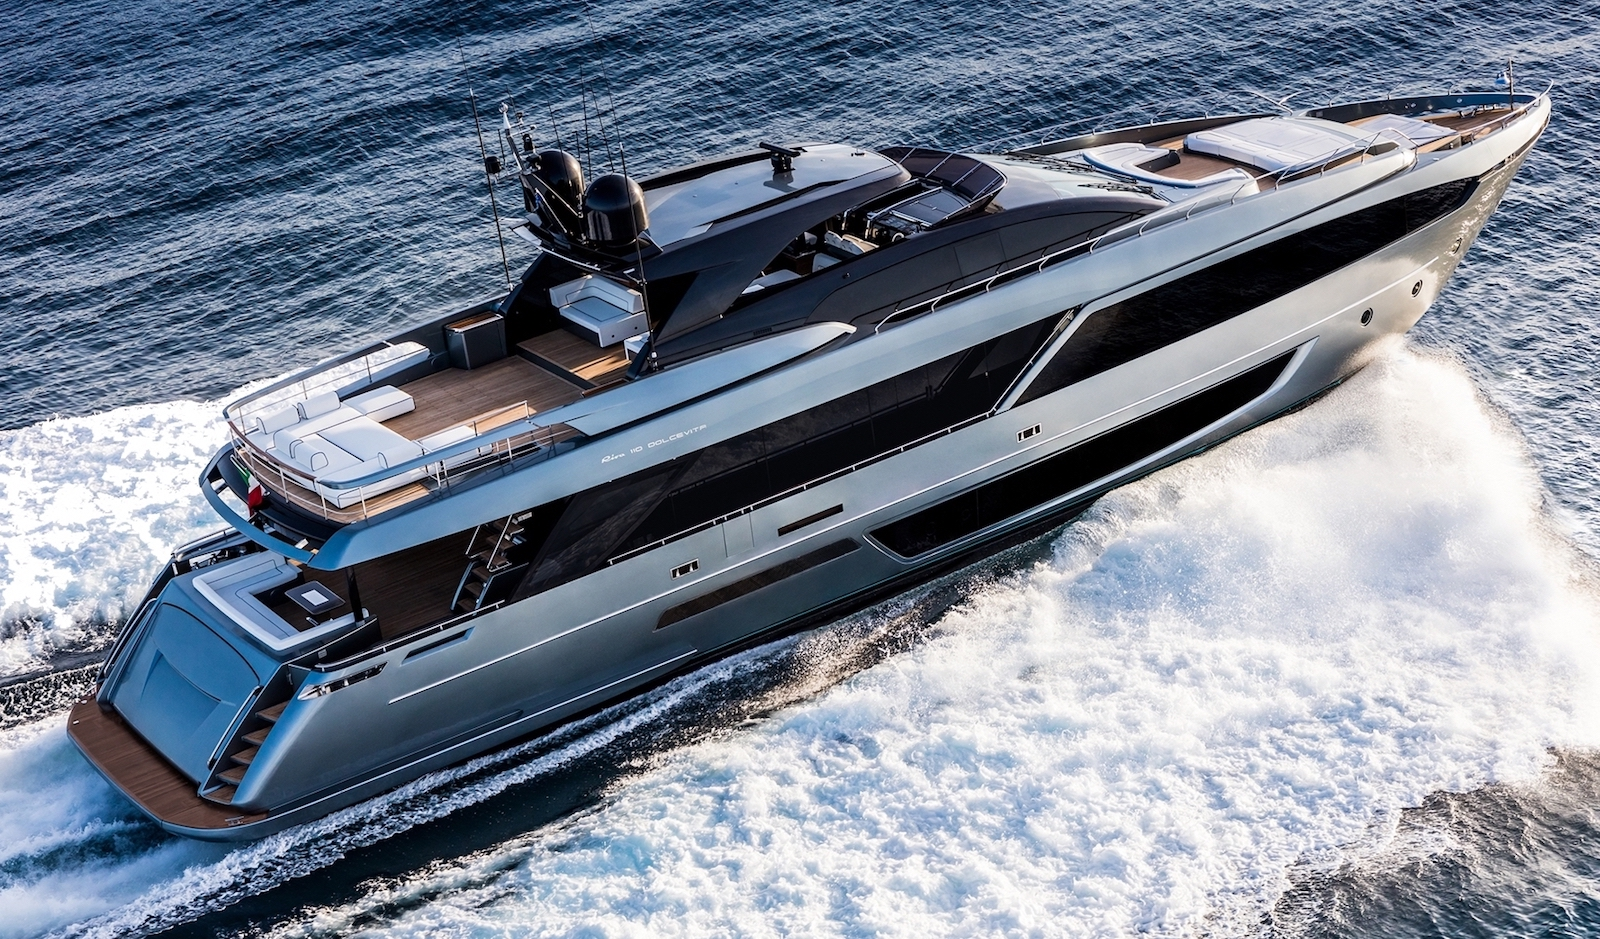 Ray White Marine - Luxury Yacht Sales and Boat Auctions